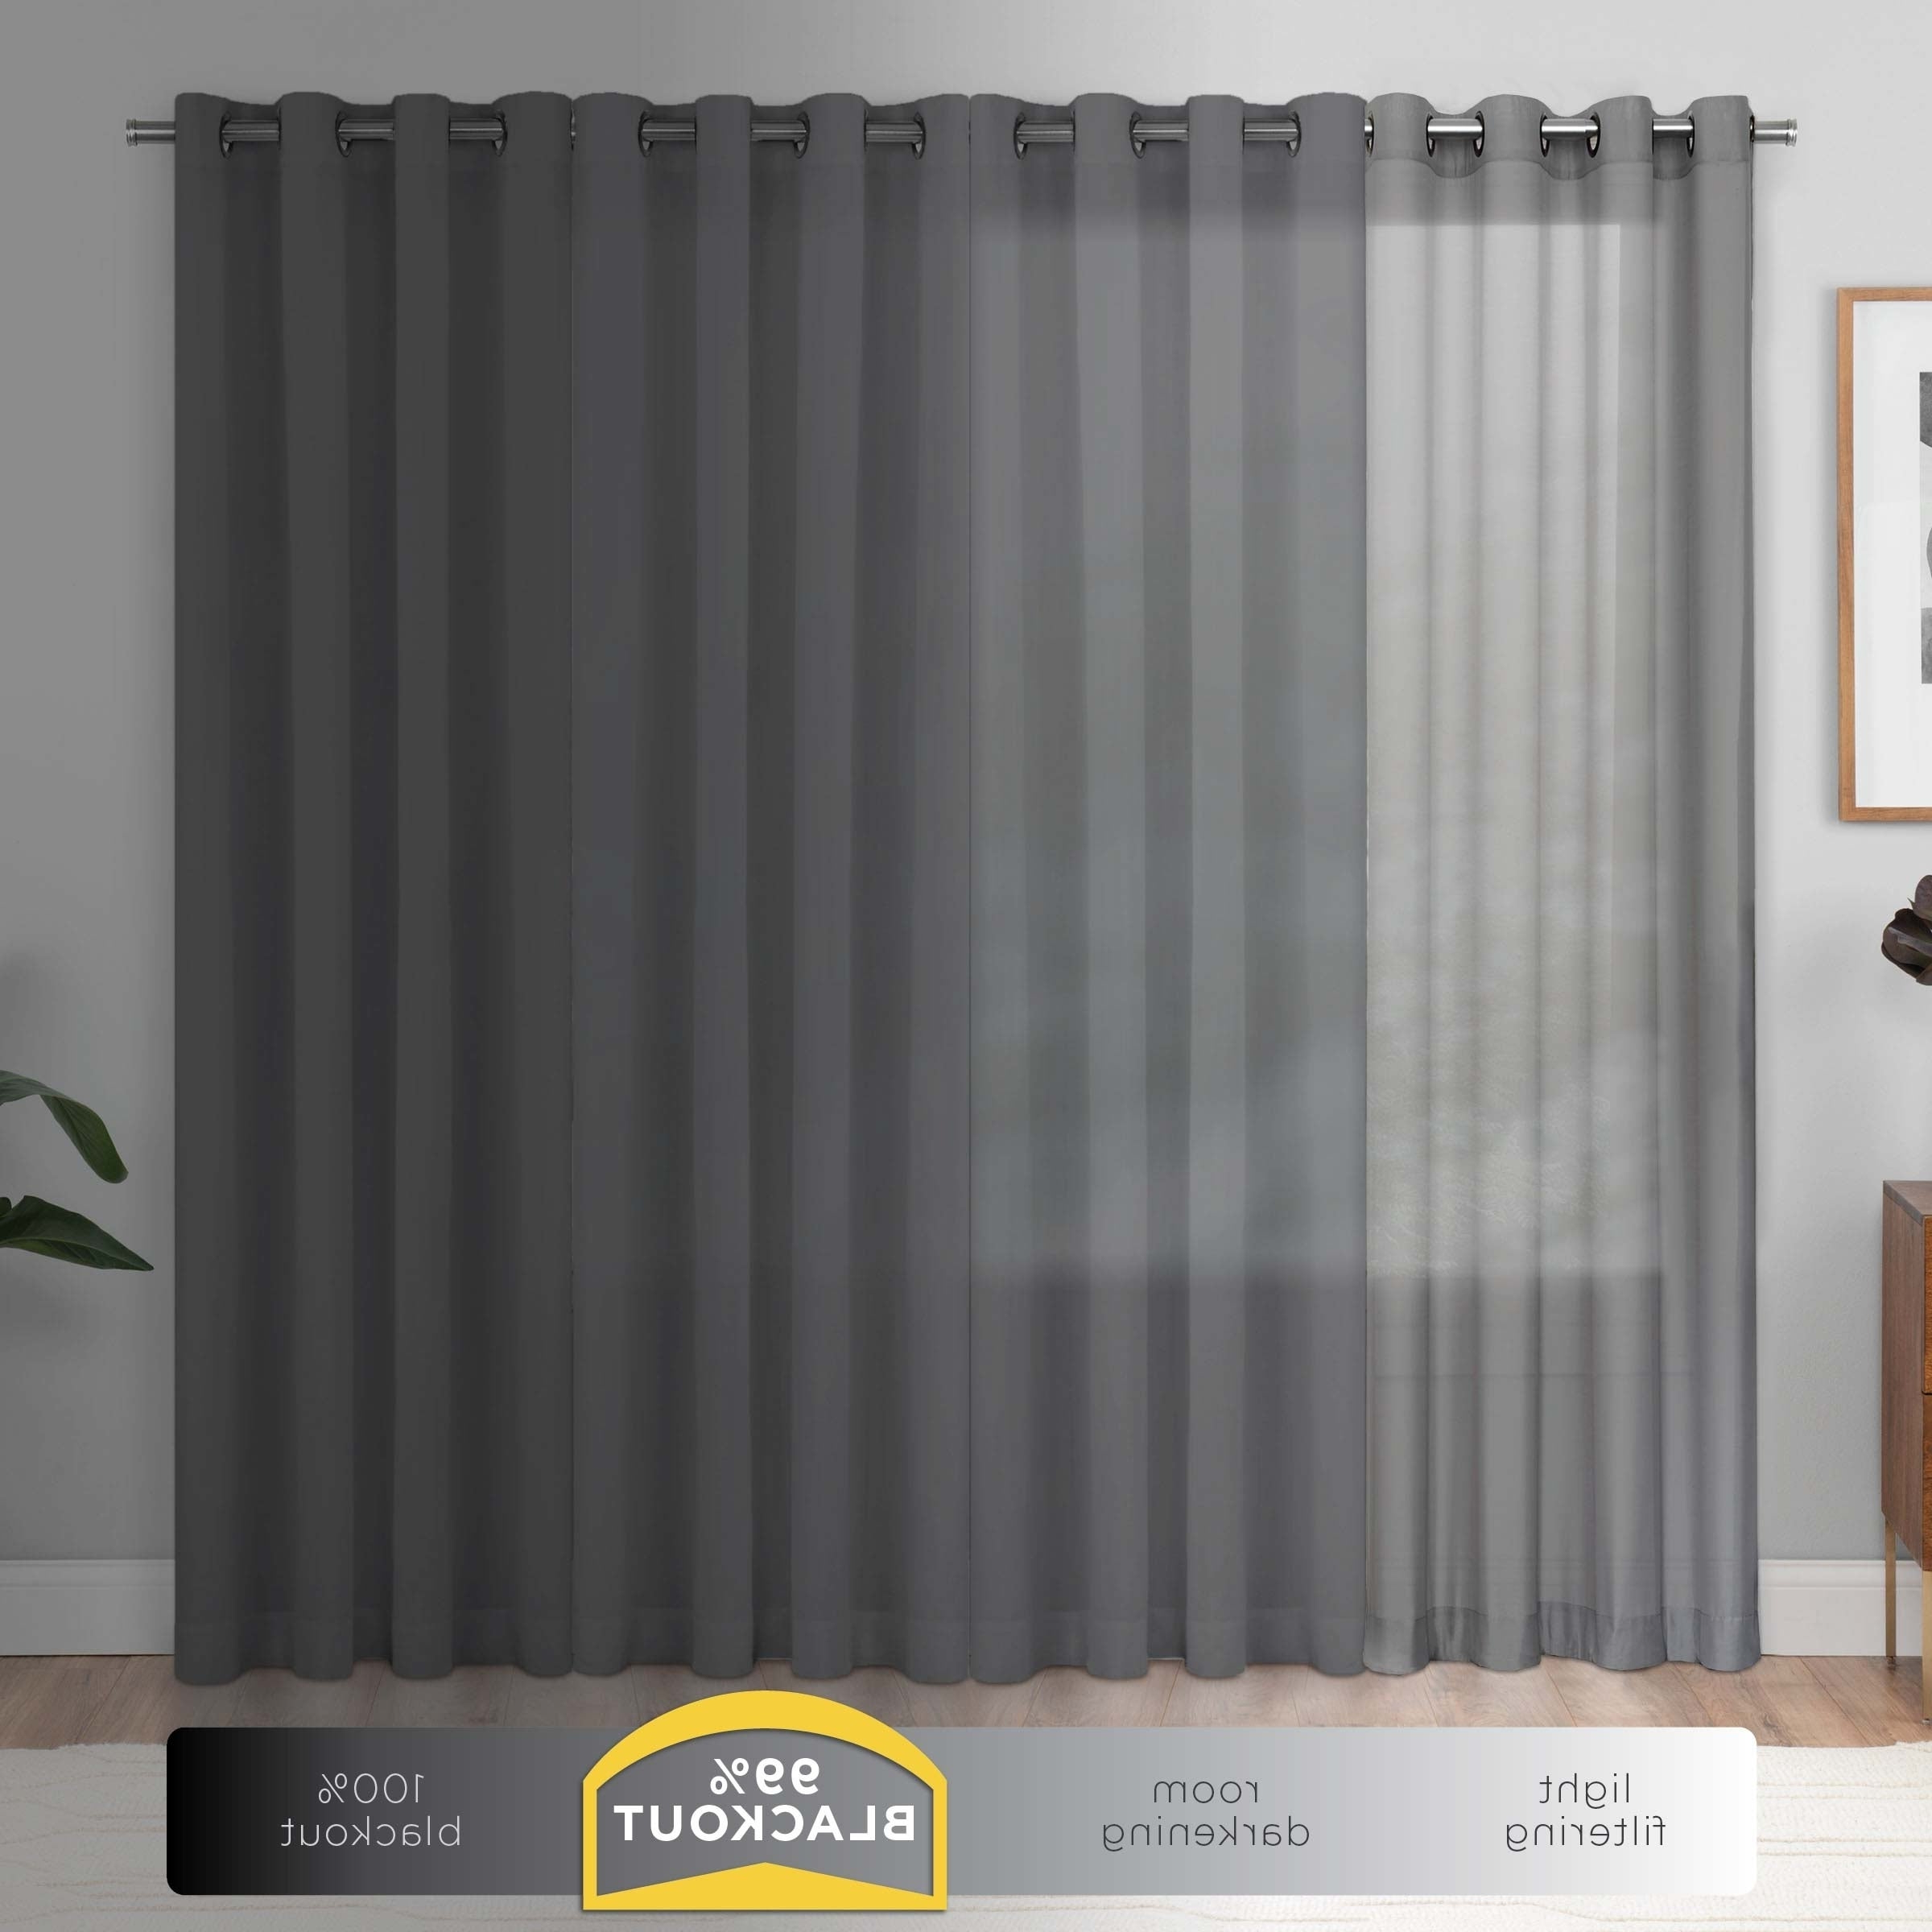 Thermaweave Blackout Curtains For Favorite Eclipse Dutton Thermaweave Blackout Window Curtain Panel (View 11 of 20)